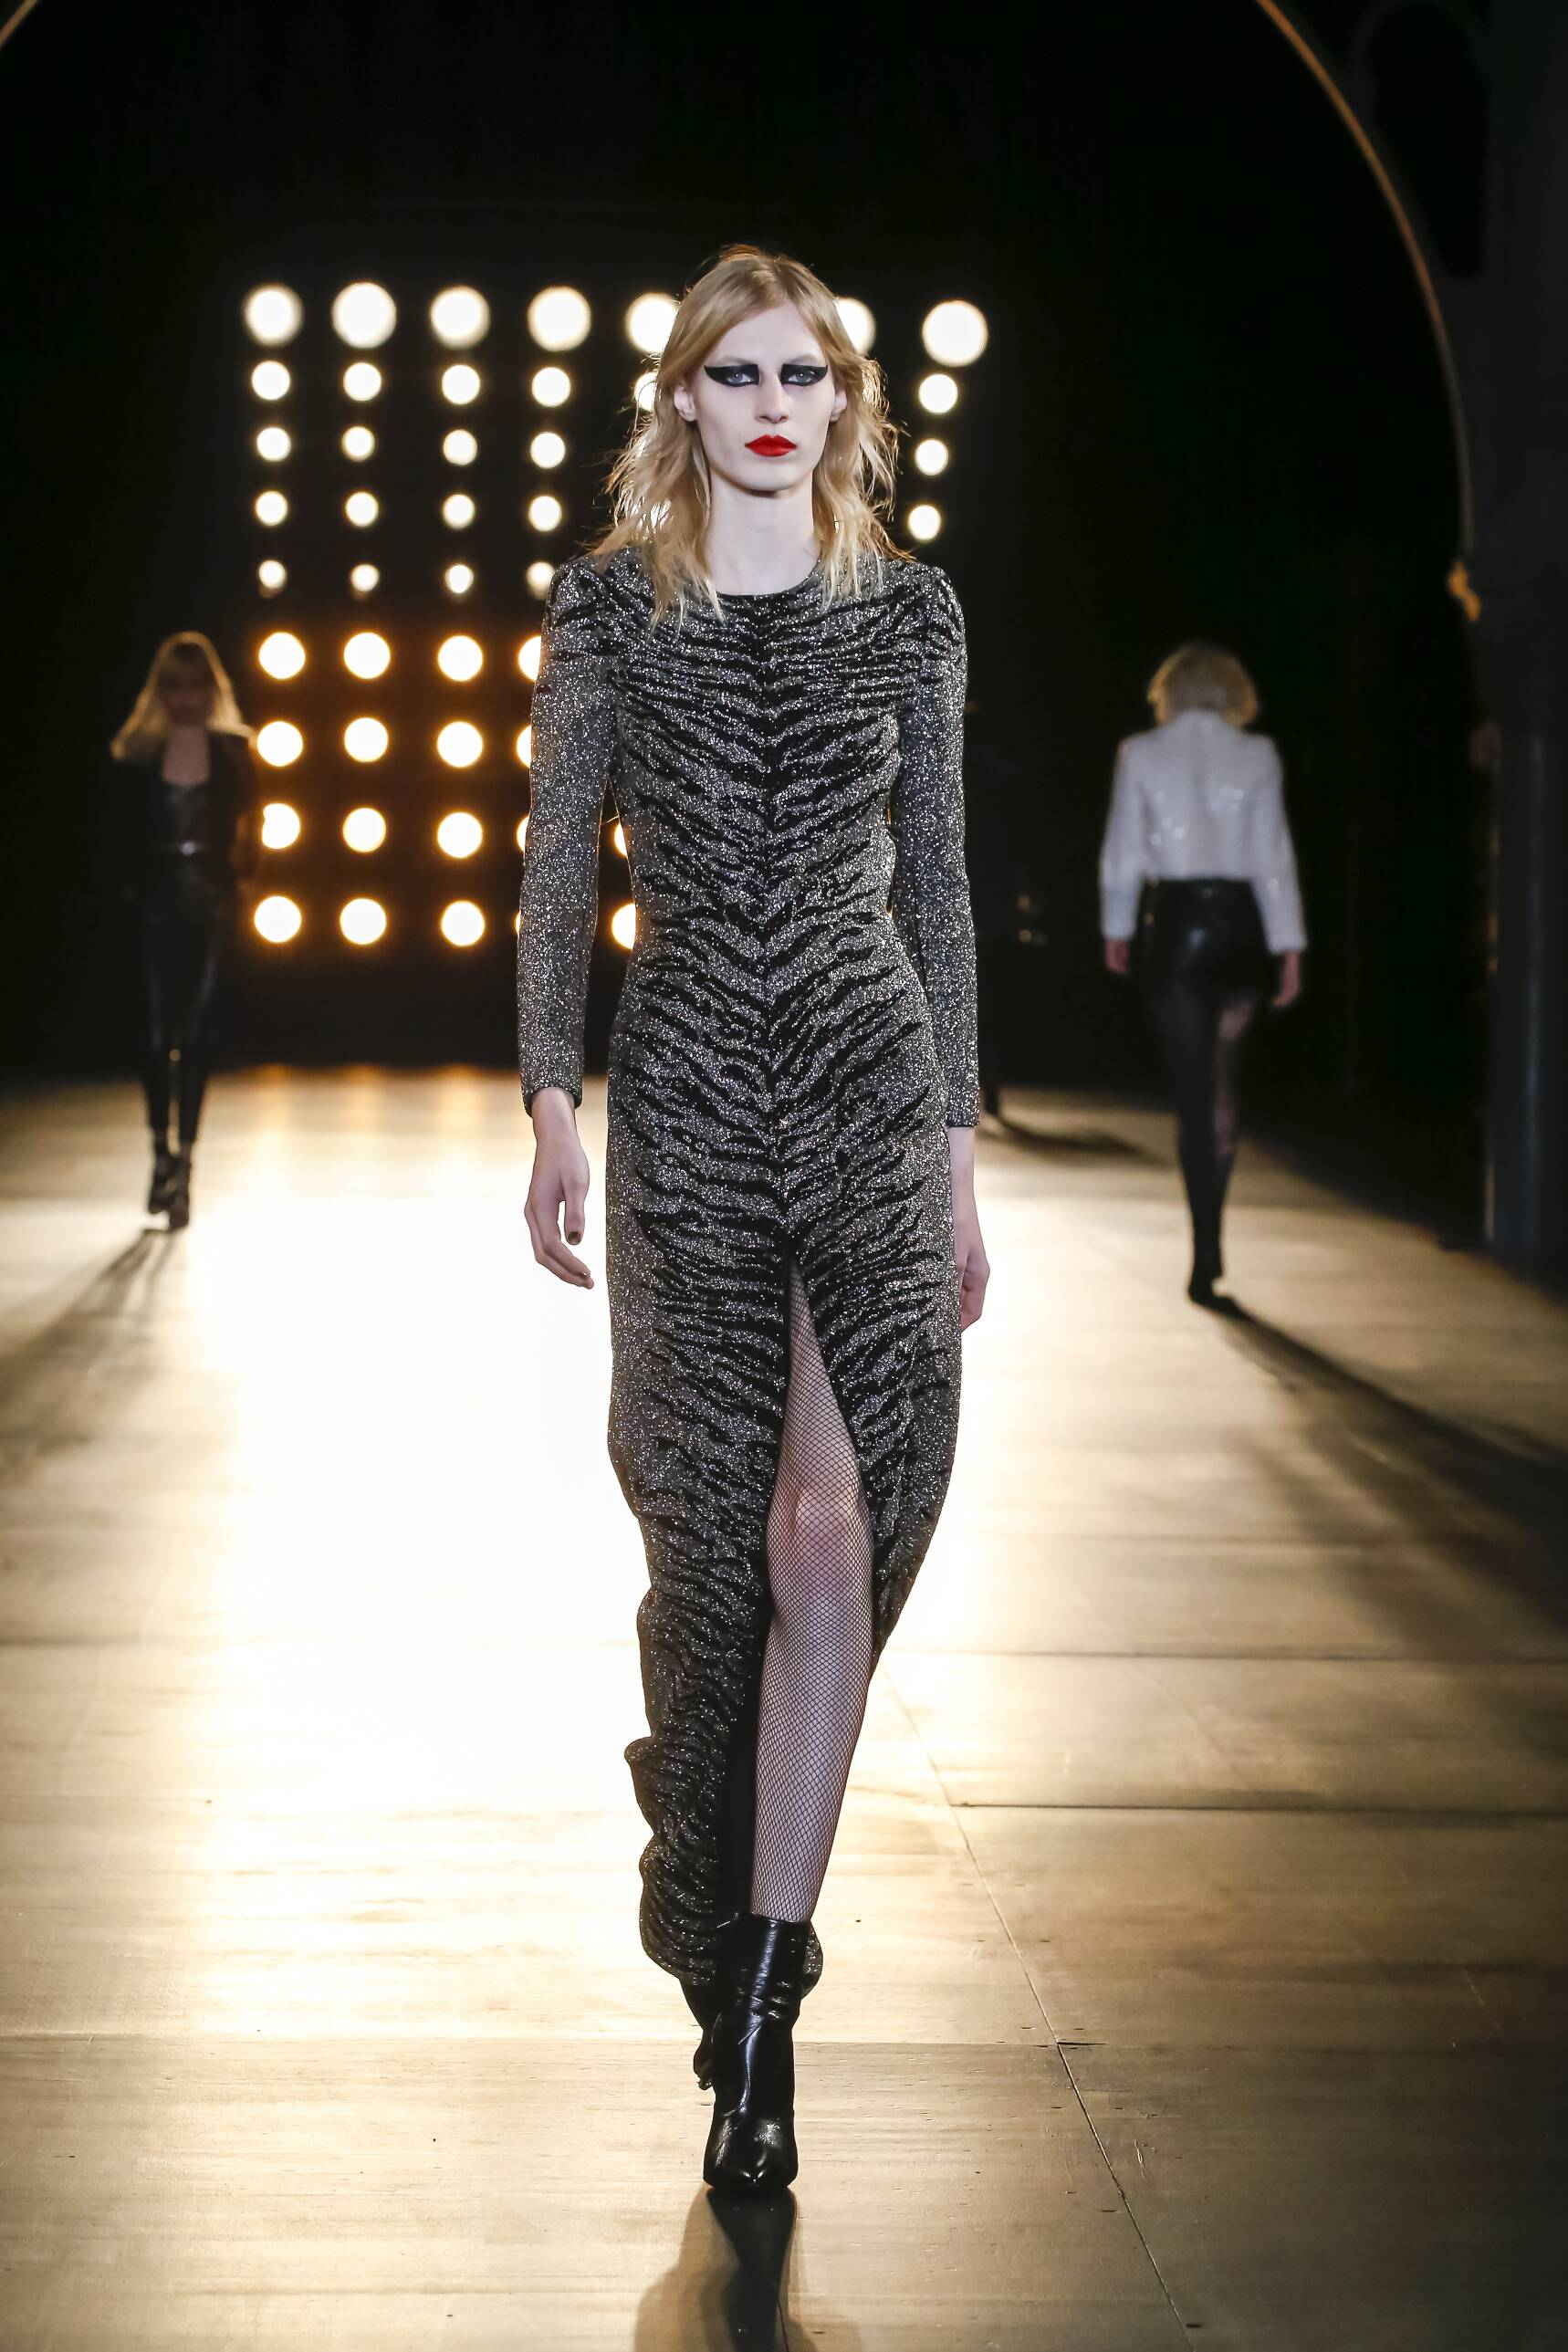 Saint Laurent Fall Winter 2015 16 Womenswear Collection Paris Fashion Week Fashion Show